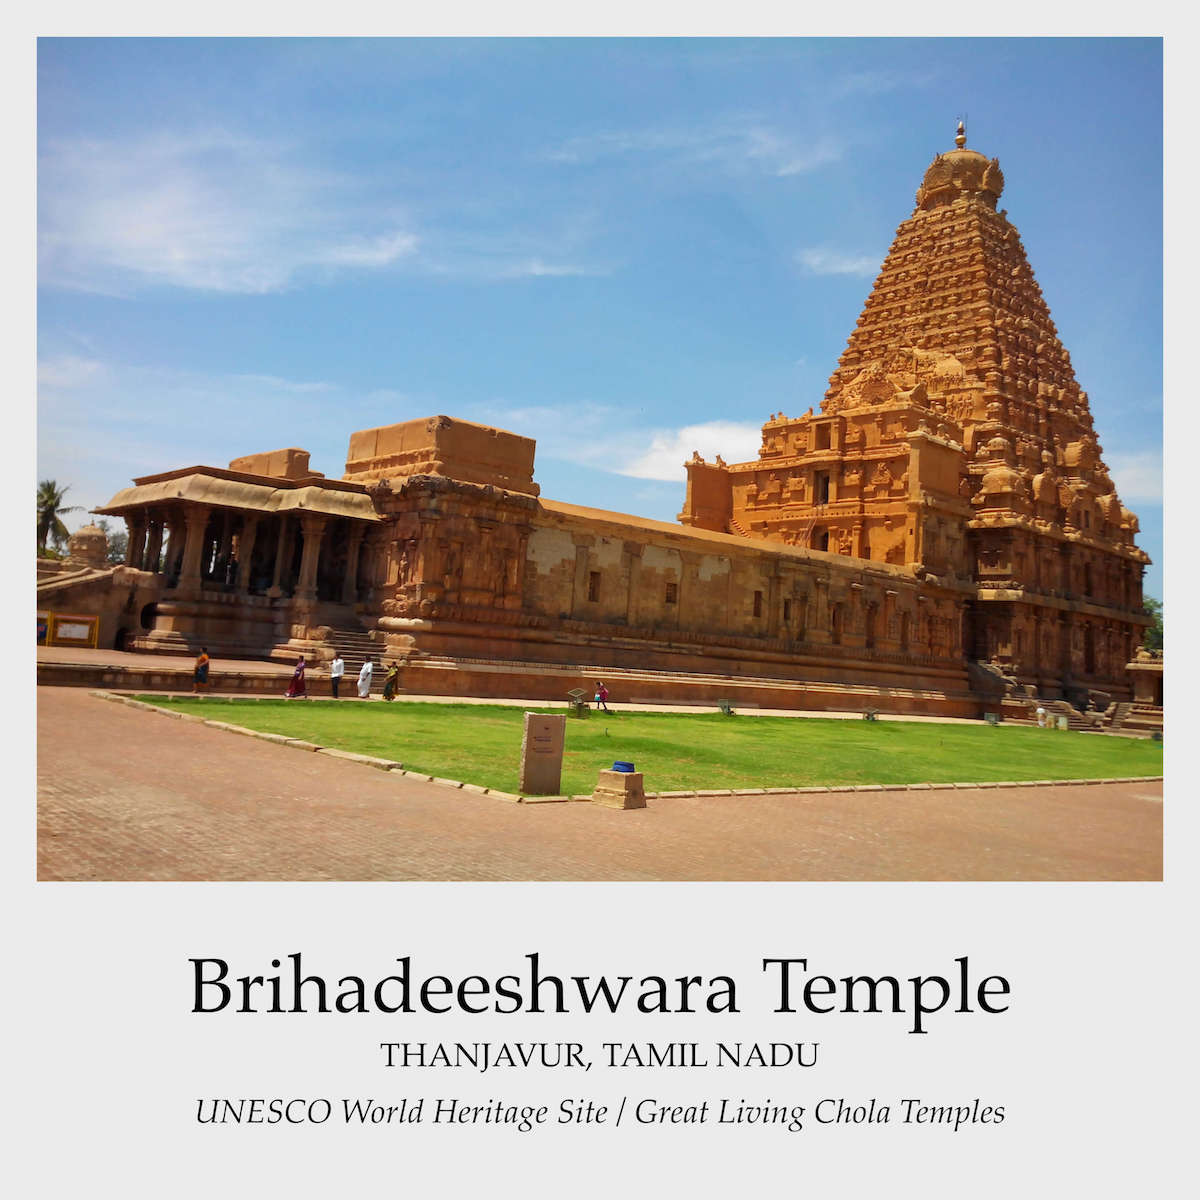 The Brihadisvara temple at Tanjavur marks the greatest achievement of the Chola architects. Known in the inscriptions as Dakshina Meru, the construction of this temple was inaugurated by the Chola King, Rajaraja I (985-1012 CE) possibly in the 19th regal year (1003-1004 CE) and consecrated by his own hands in the 25th regal year (1009-1010 CE).